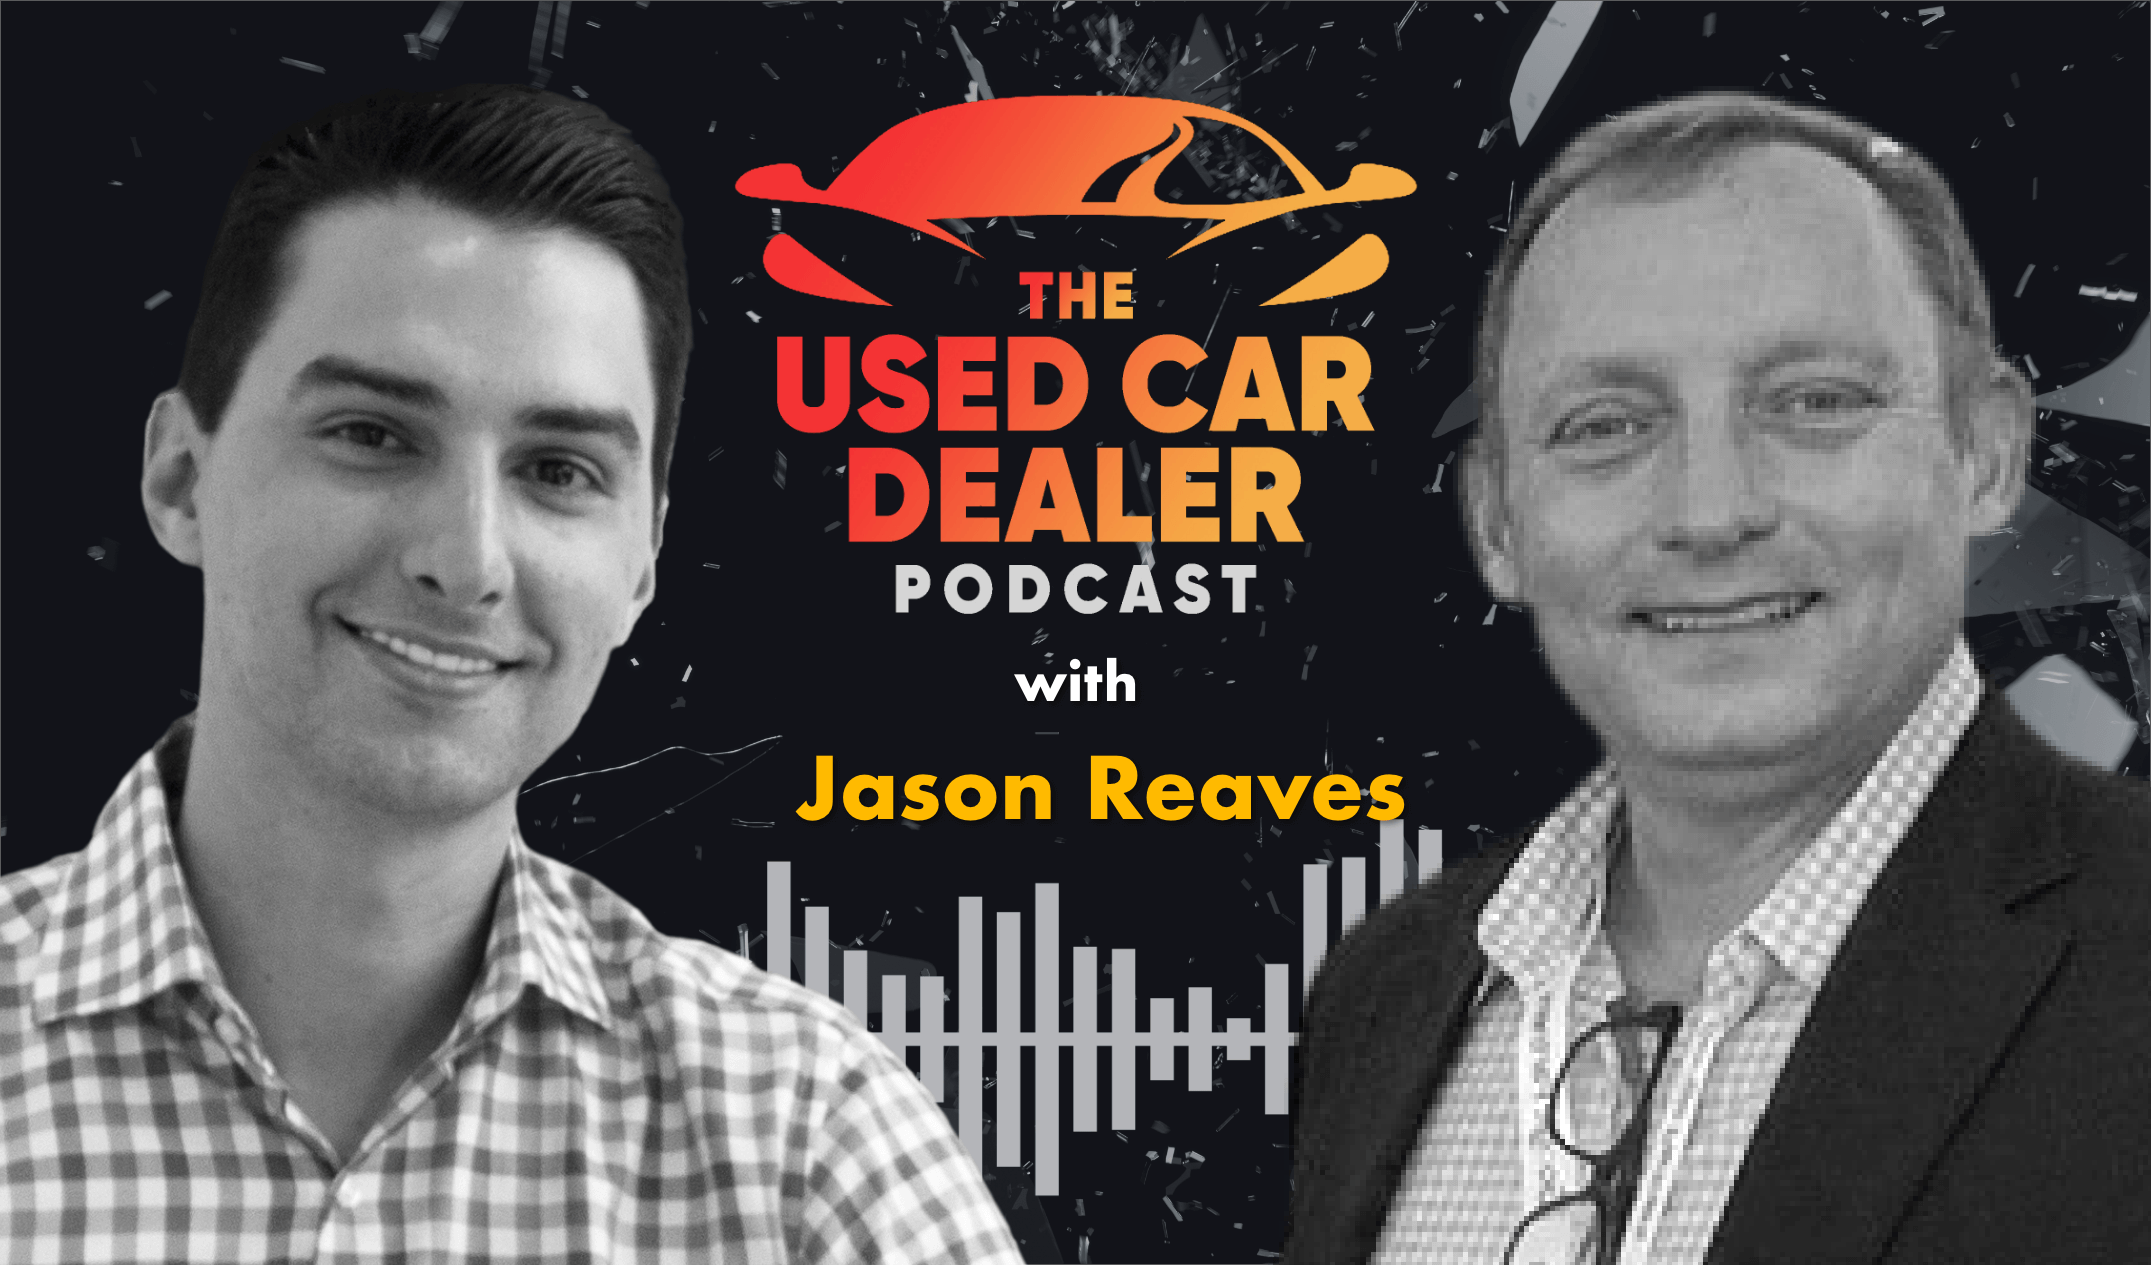 Interview with Jason Reaves on Buy Here Pay Here Auto Sales & Dealers